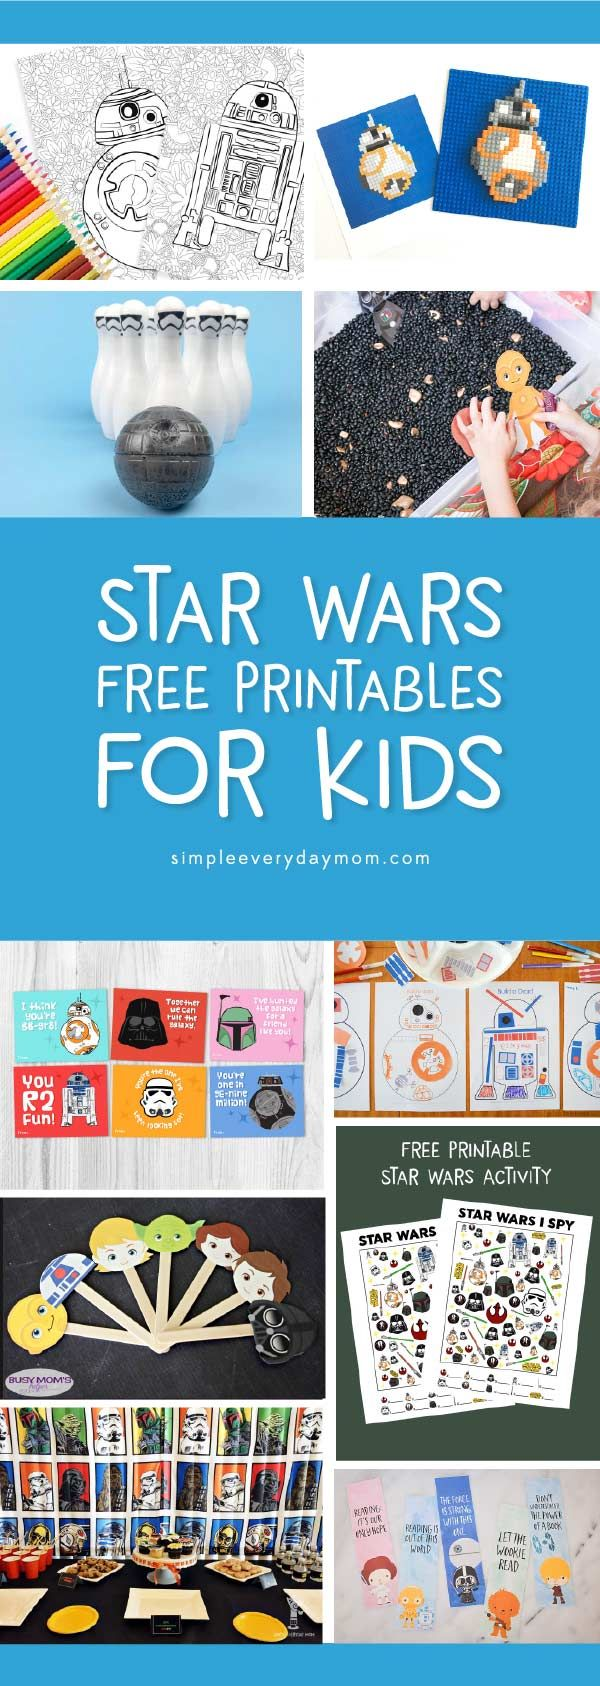 50 best *Free Printables For Kids From Simple Everyday Mom* images ...